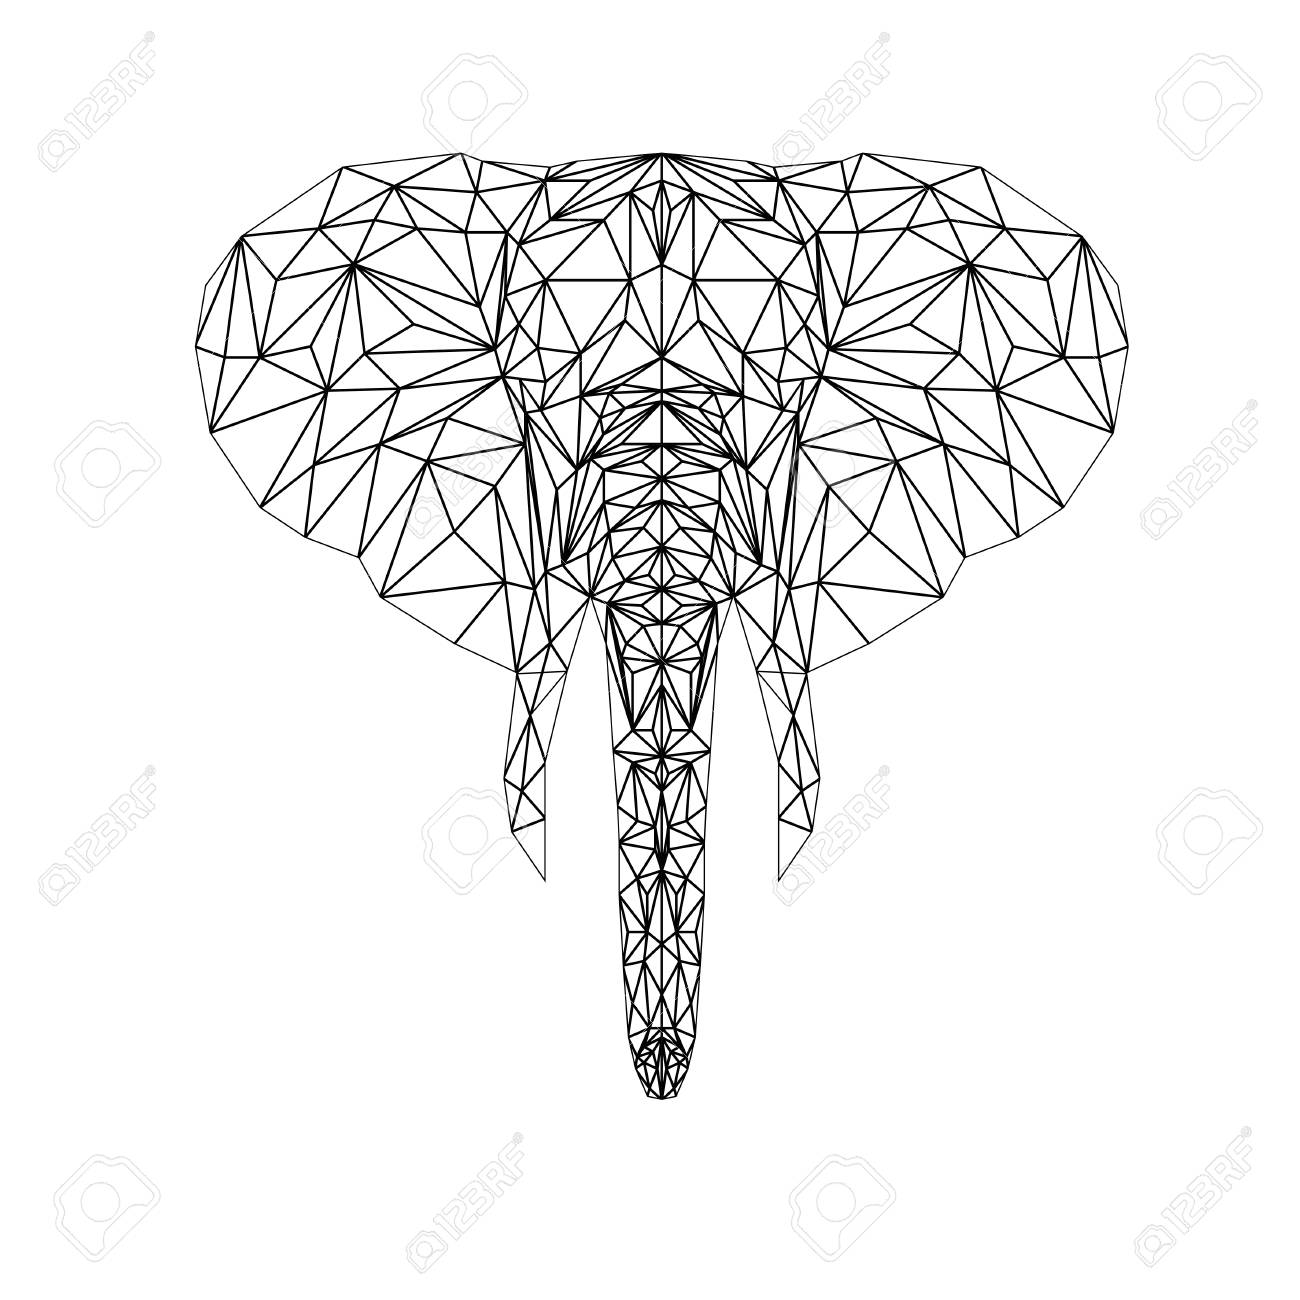 Elephant Illustration For Tattoo Coloring Wallpaper And Printing On T Shirts Silhouette